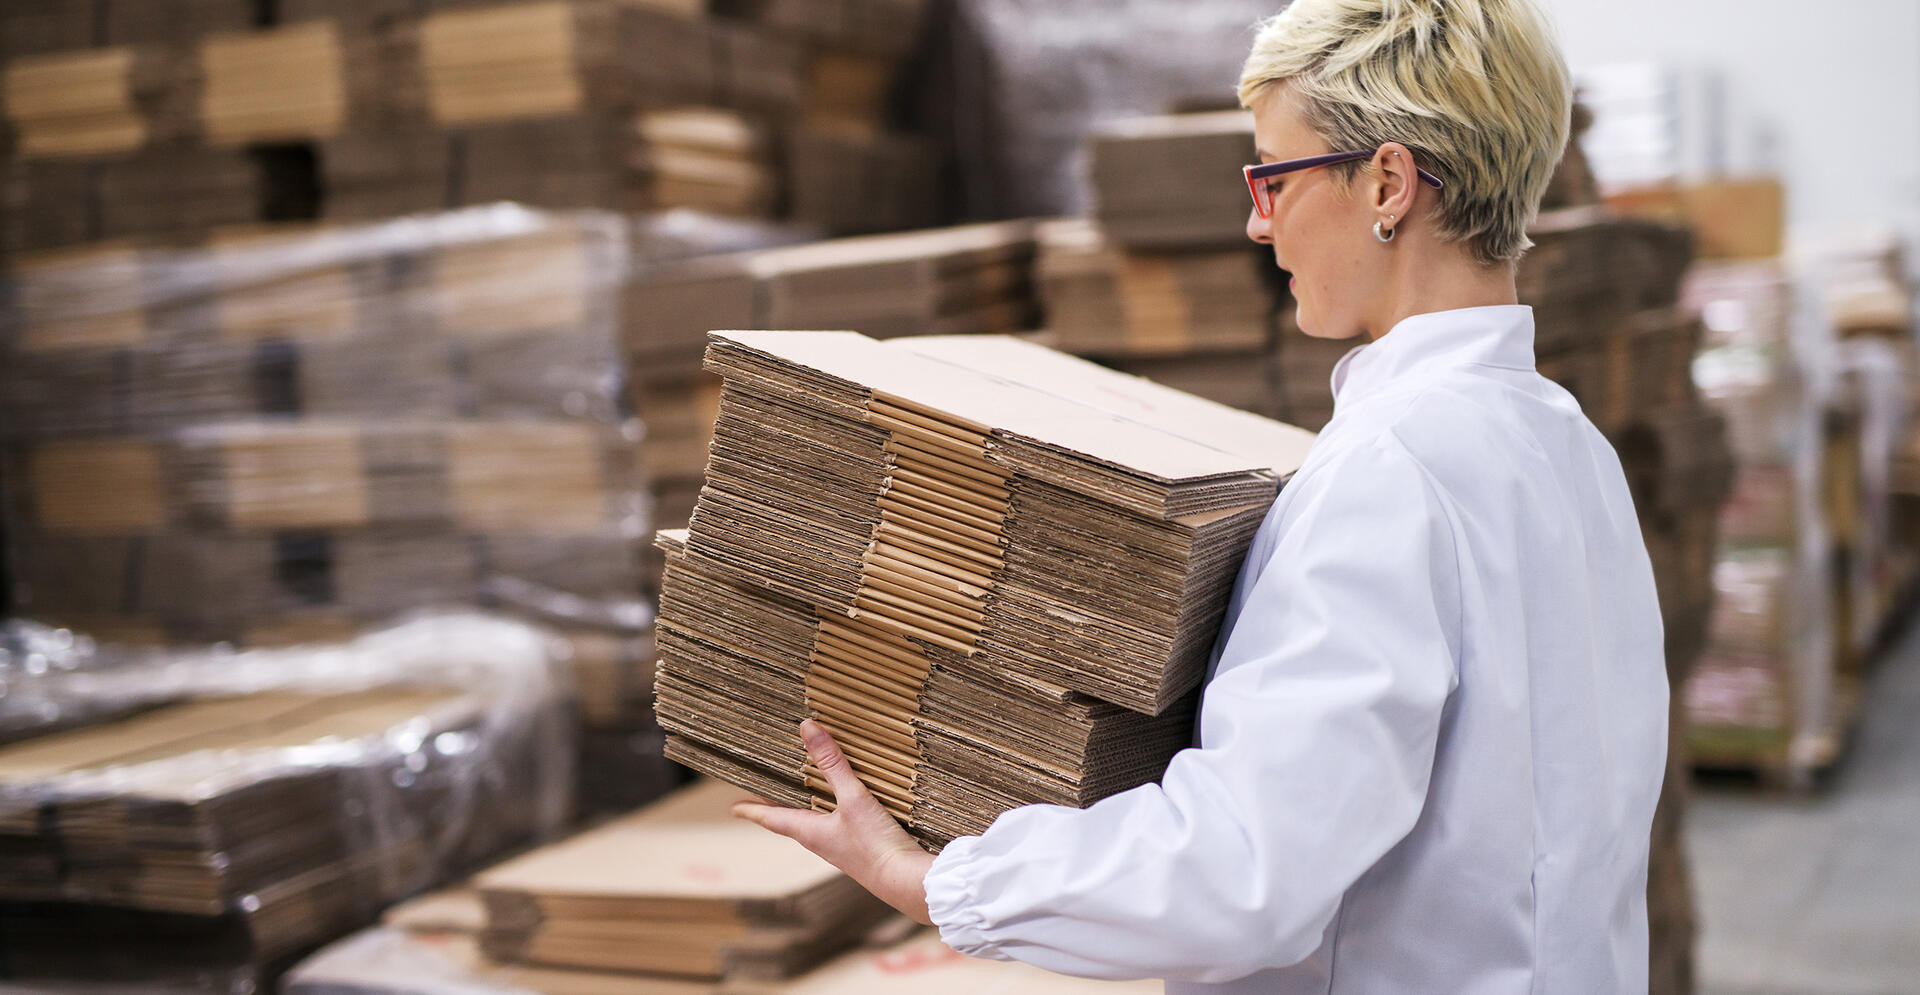 Woman carrying unmade cardboard boxes. Side view, warehouse interior.